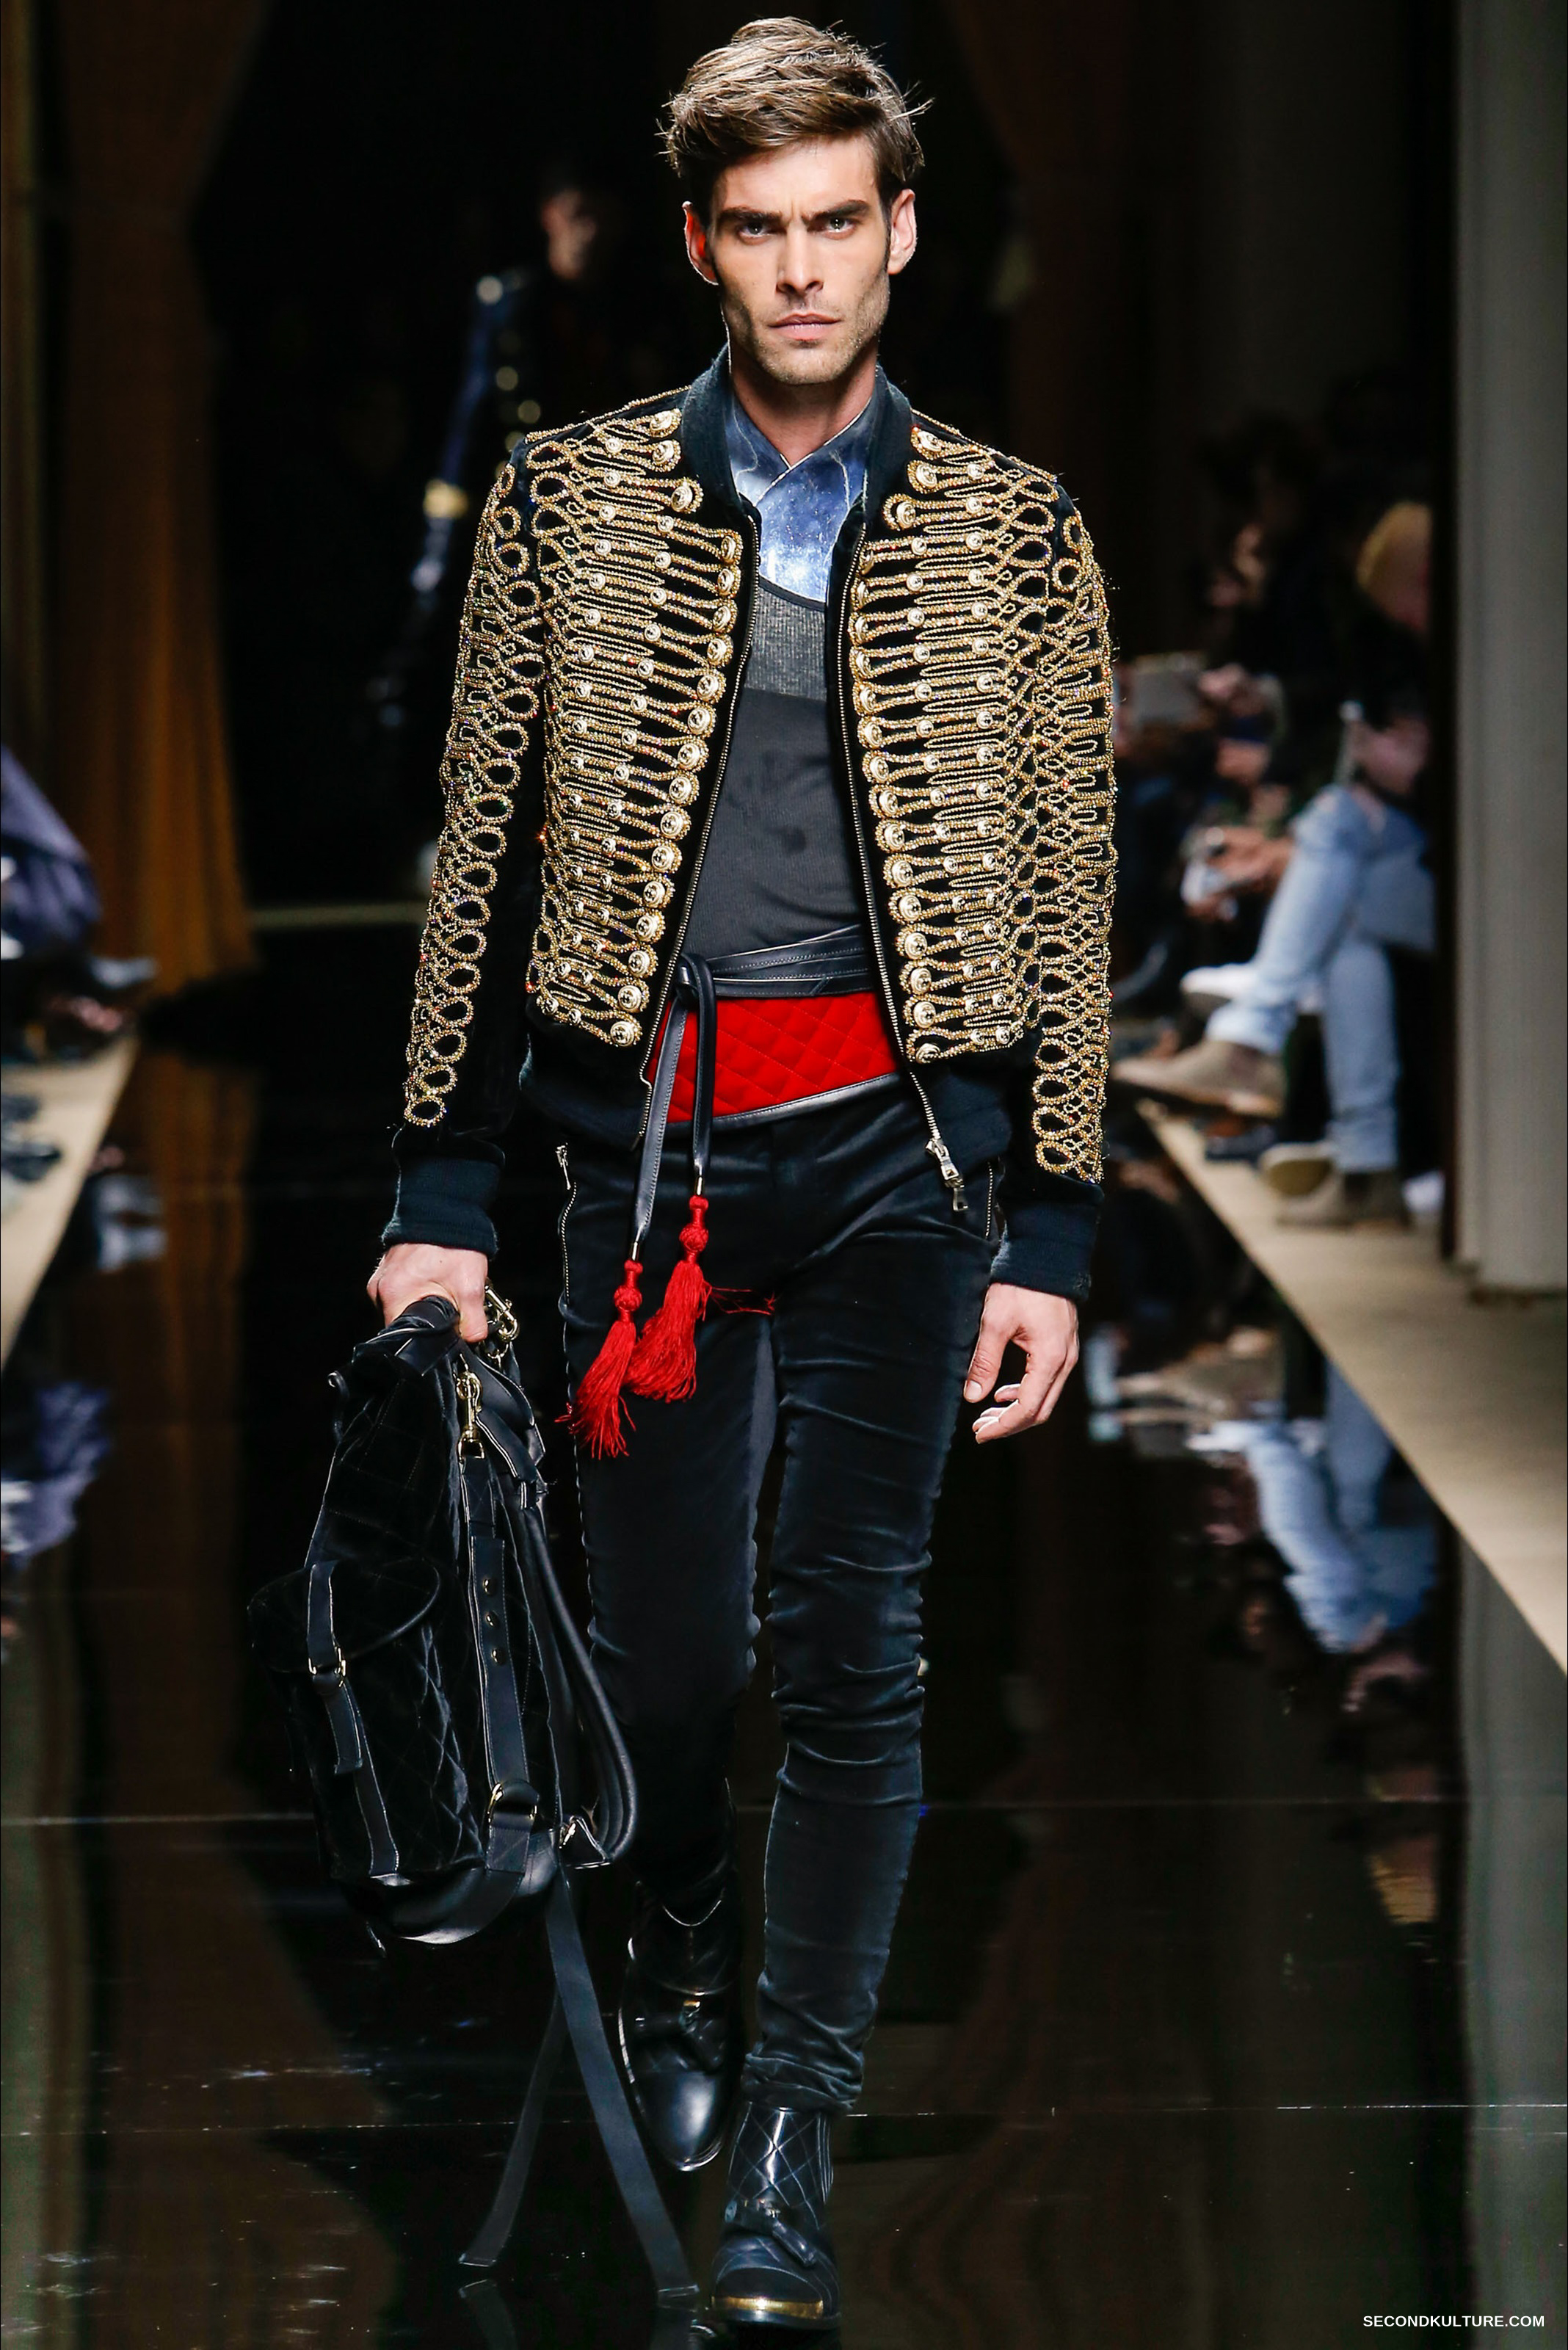 Balmain Fall Winter 2016 Menswear - Look 1/63